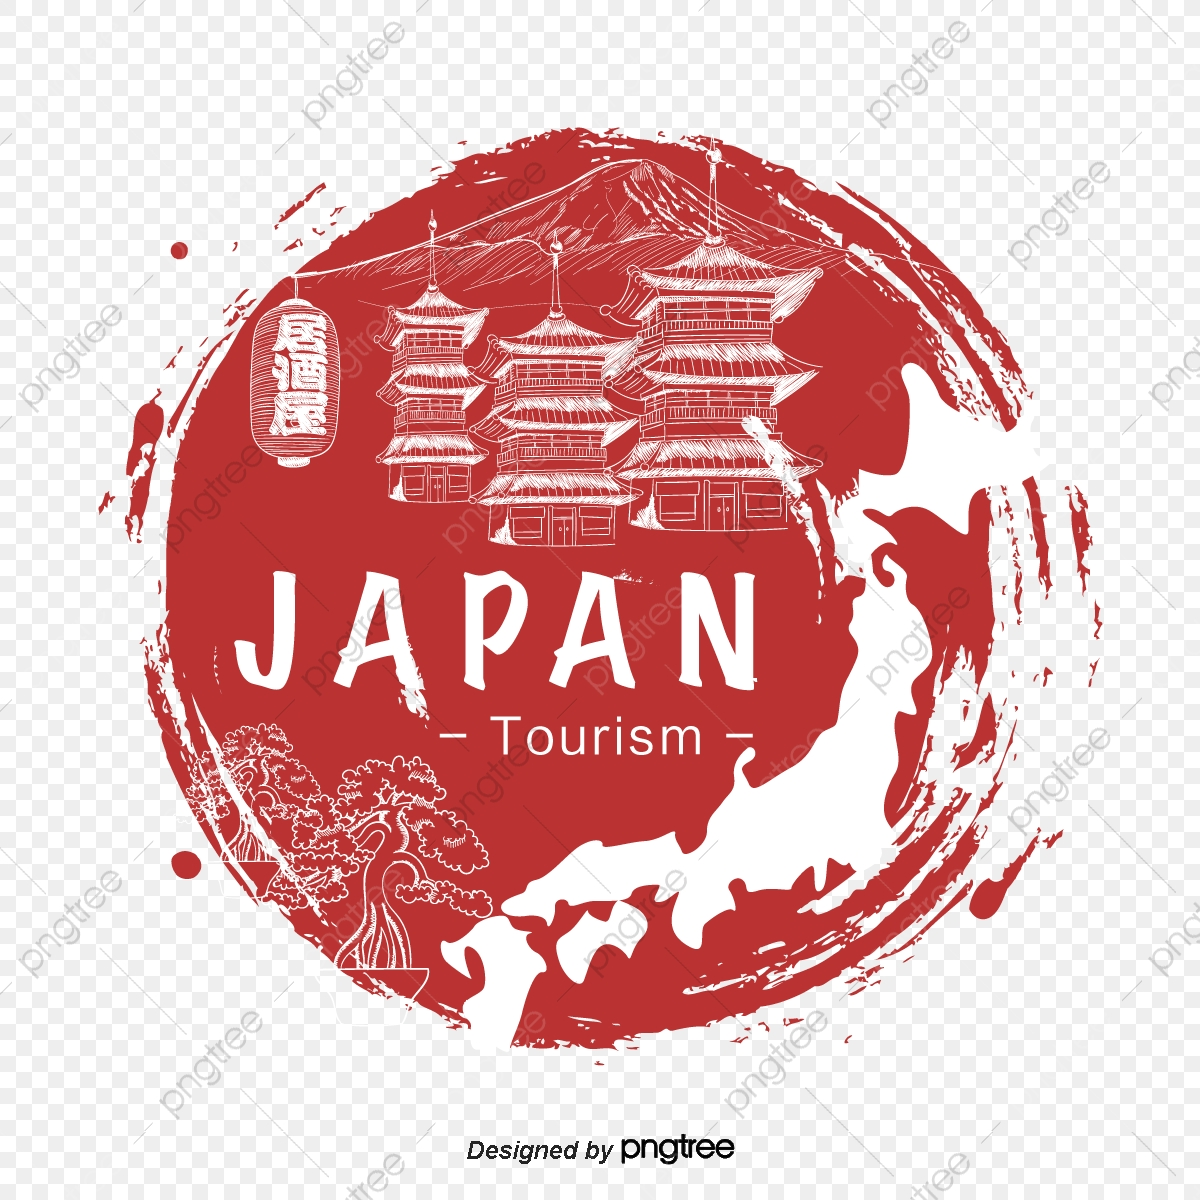 Japan Japan Travel Japanese Cherry Png And Vector With Transparent Background For Free Download